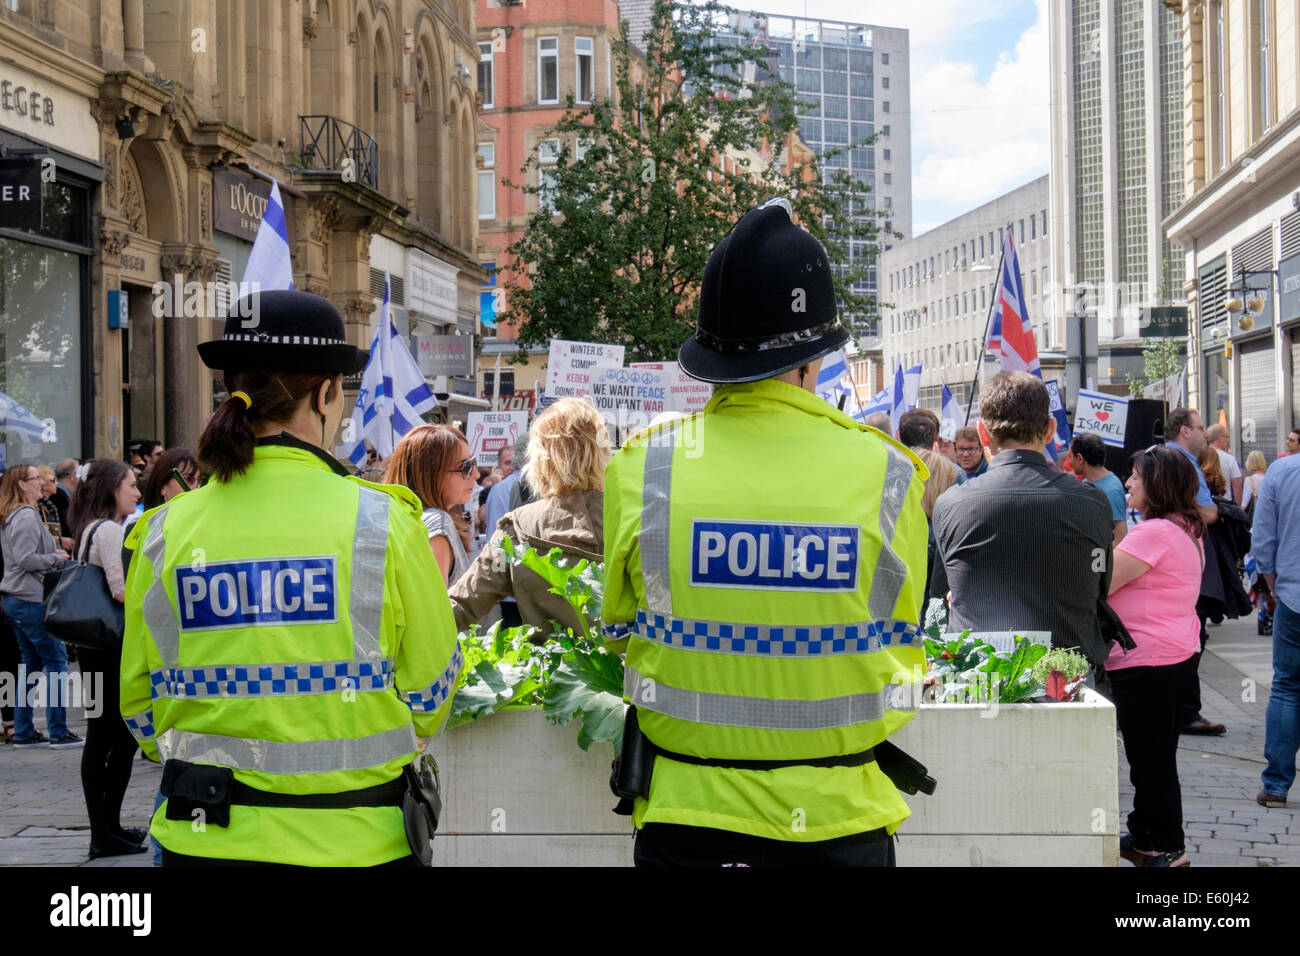 Manchester, England, UK, 9th August 2014. Two Police Officers observe the pro-Israeli and Antisemitism demonstrators - Stock Image